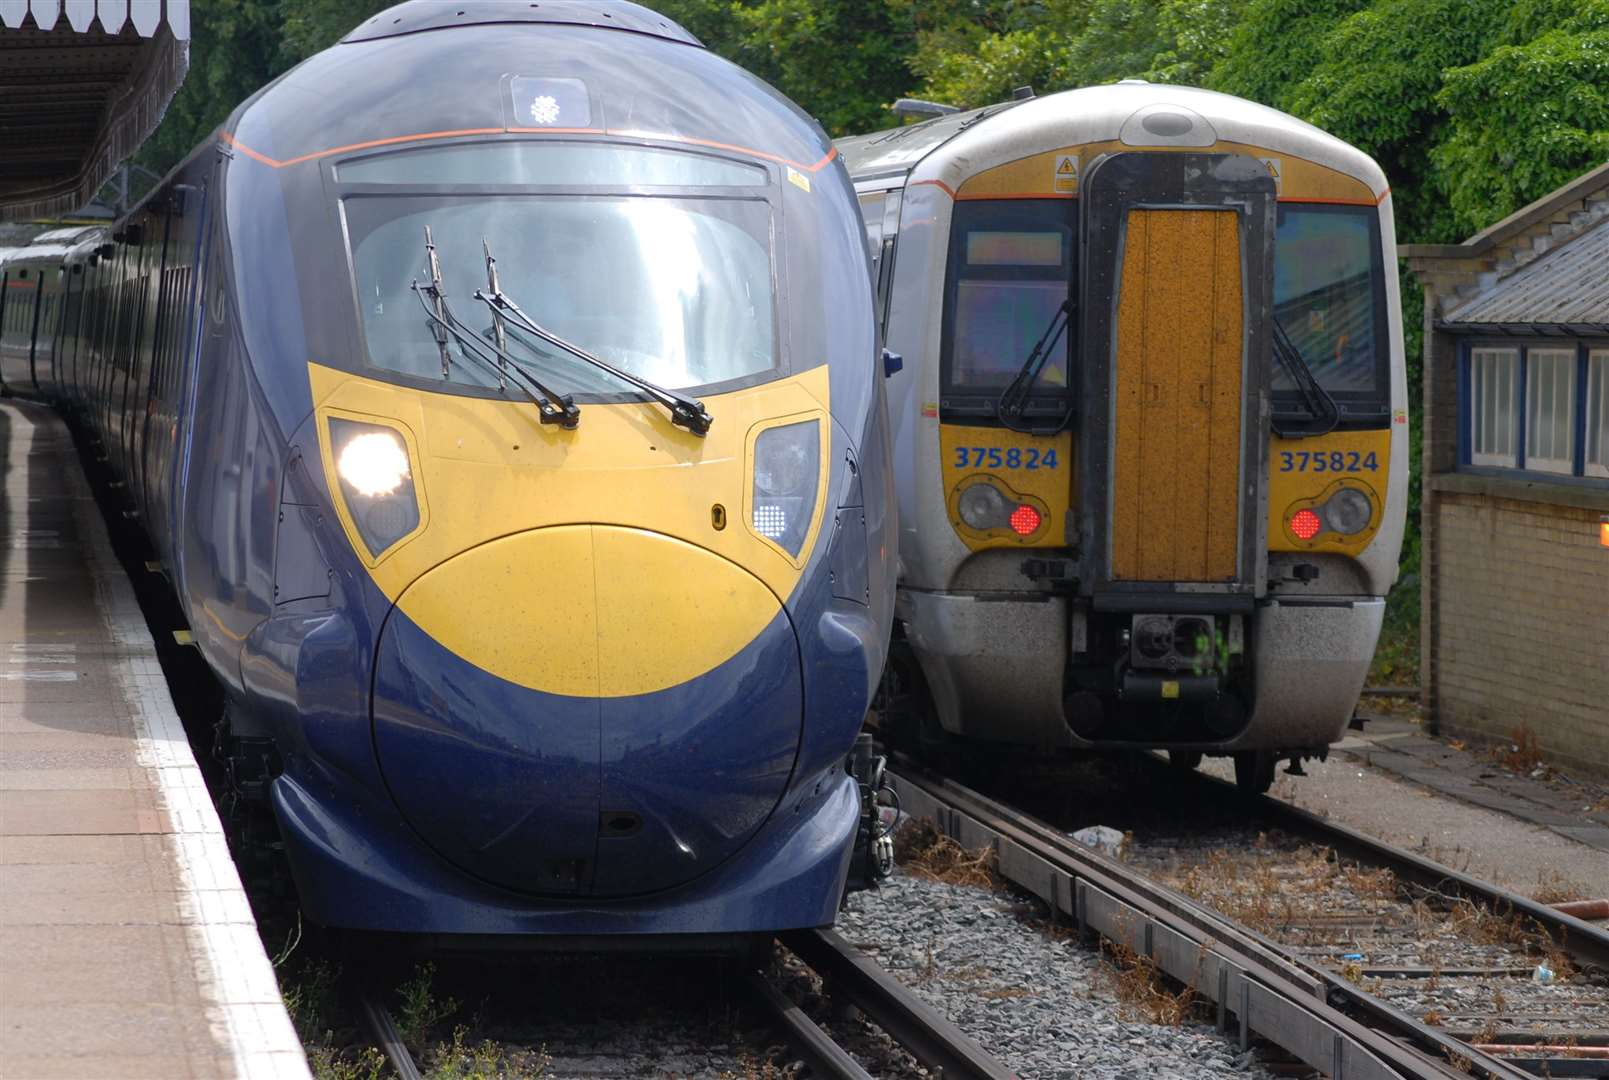 Southeastern will continue to run rail services in the county until April 2020